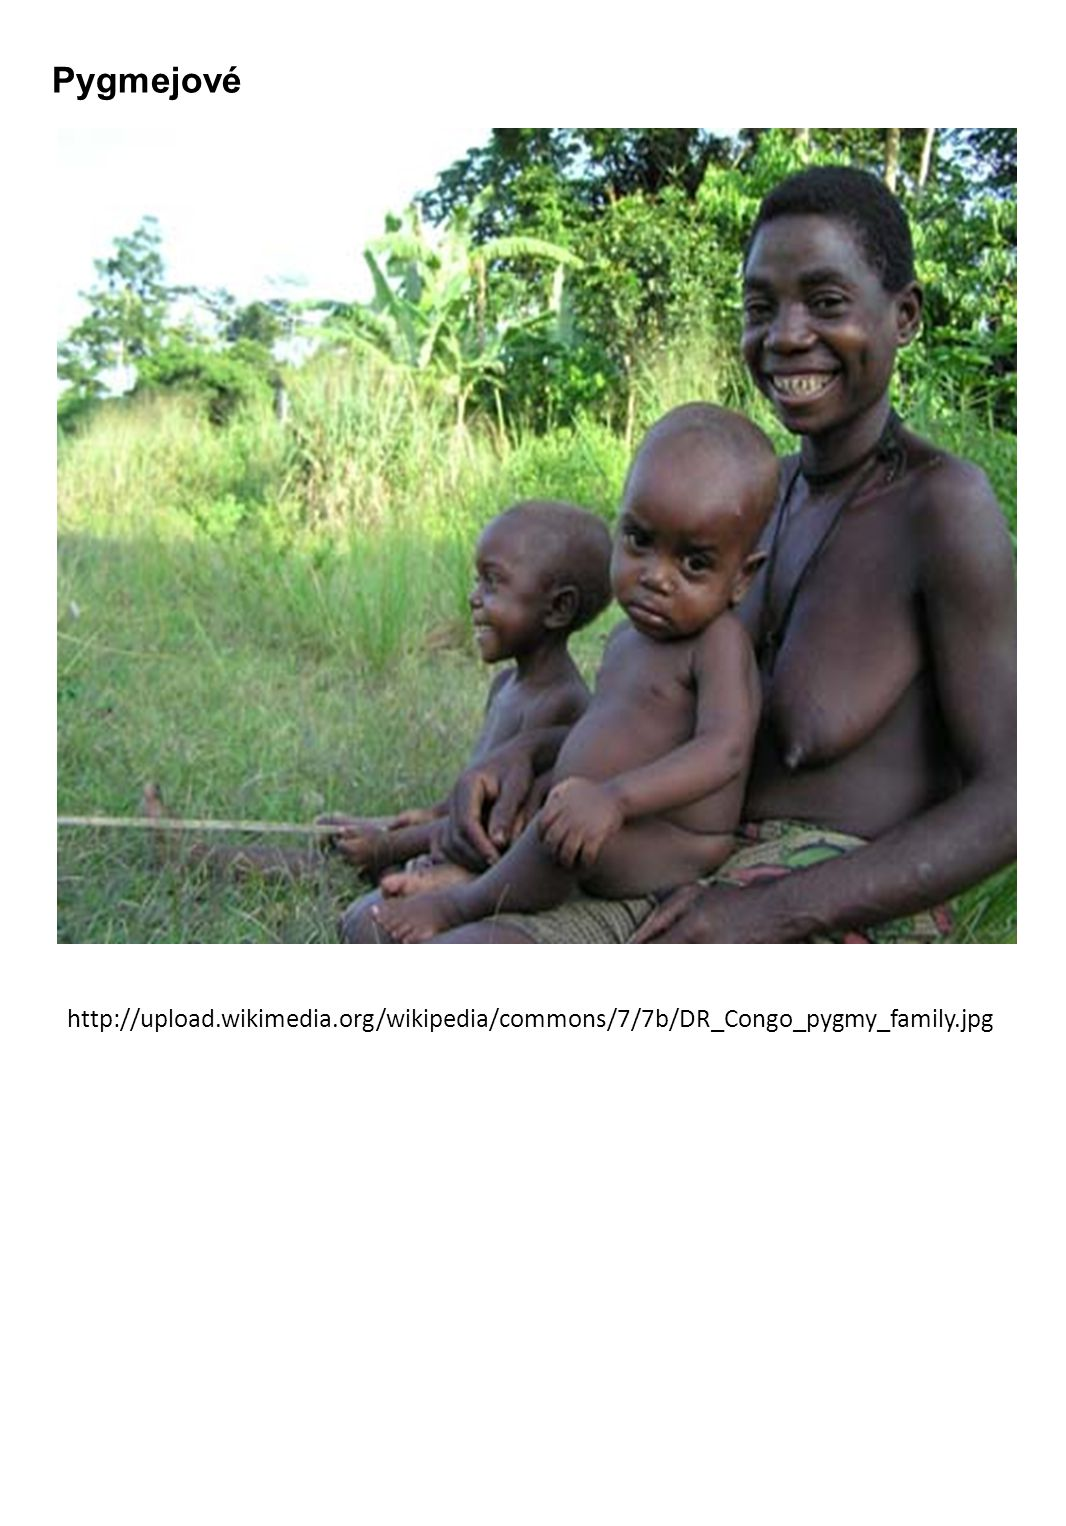 Pygmejové http://upload.wikimedia.org/wikipedia/commons/7/7b/DR_Congo_pygmy_family.jpg